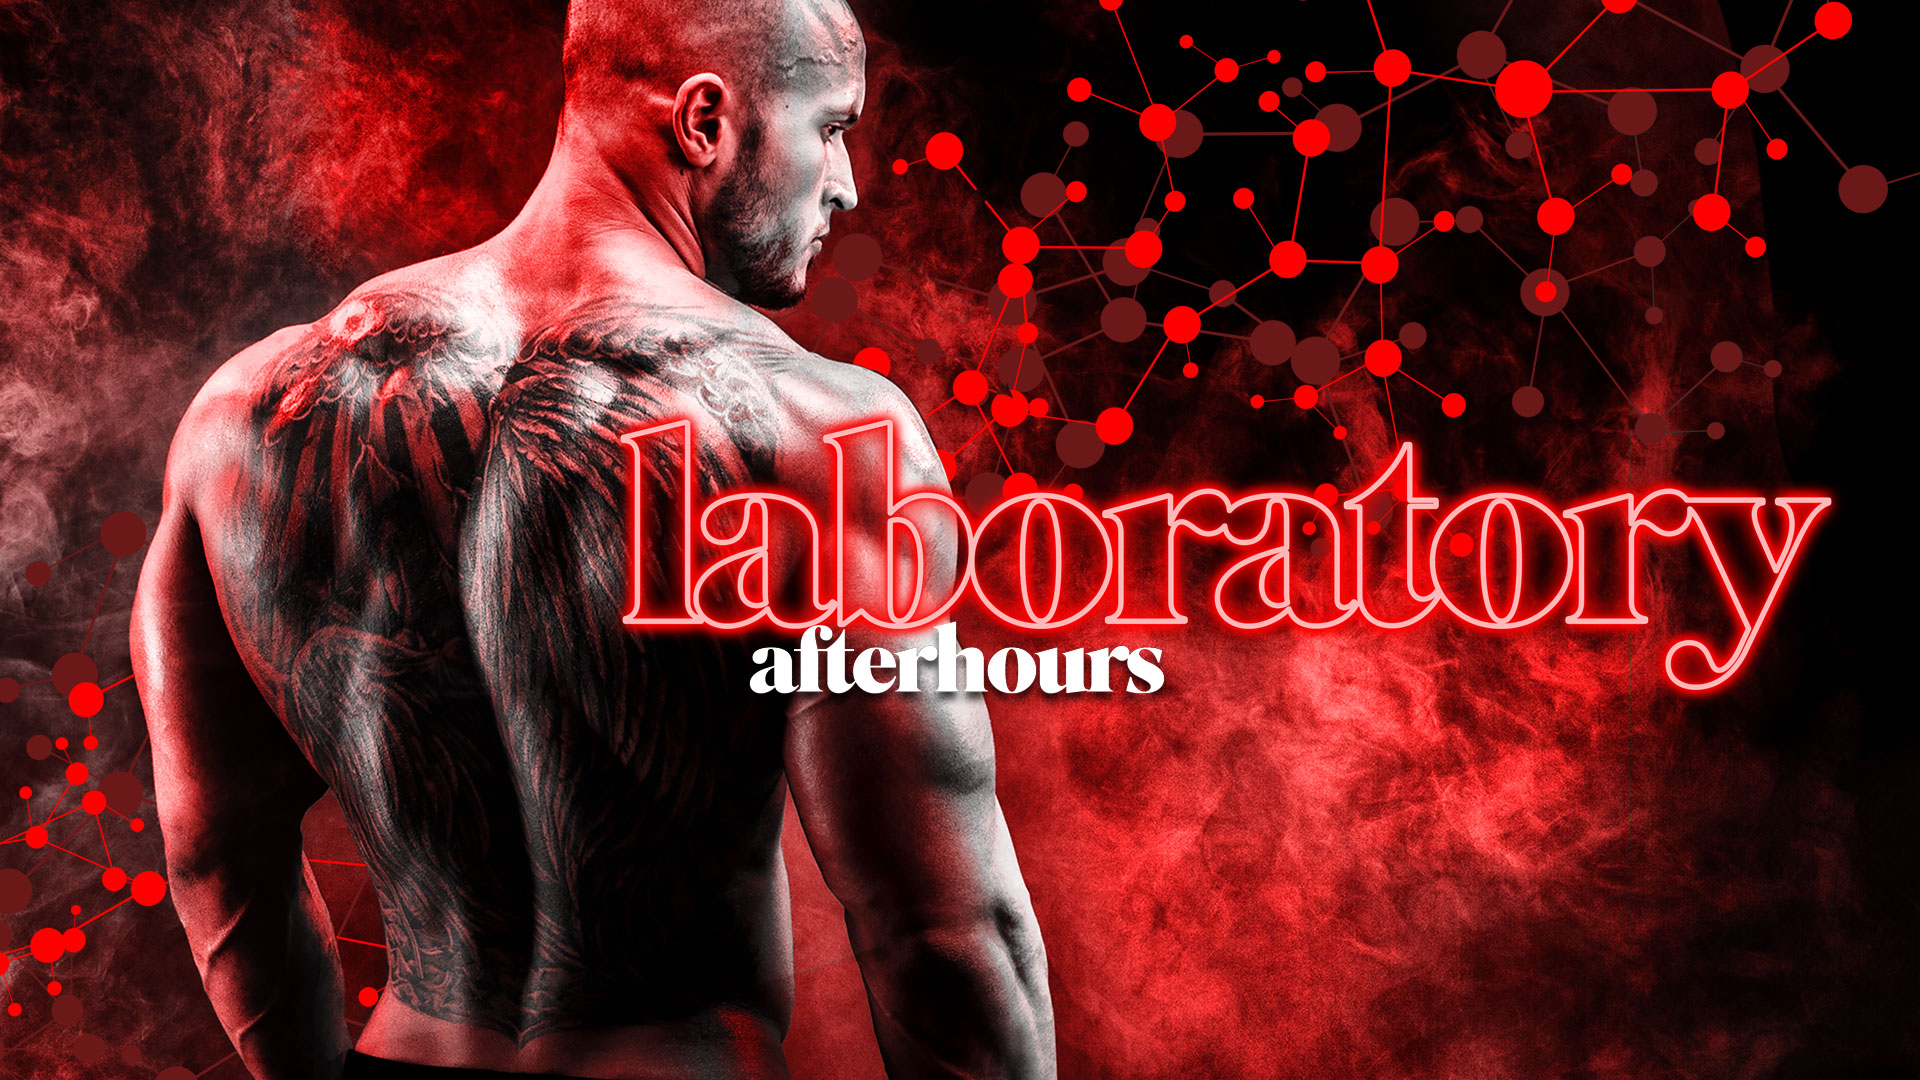 Tickets for LABoratory Pride  | Friday AFTERHOURS | After M.E.A.T. in New York from ShowClix